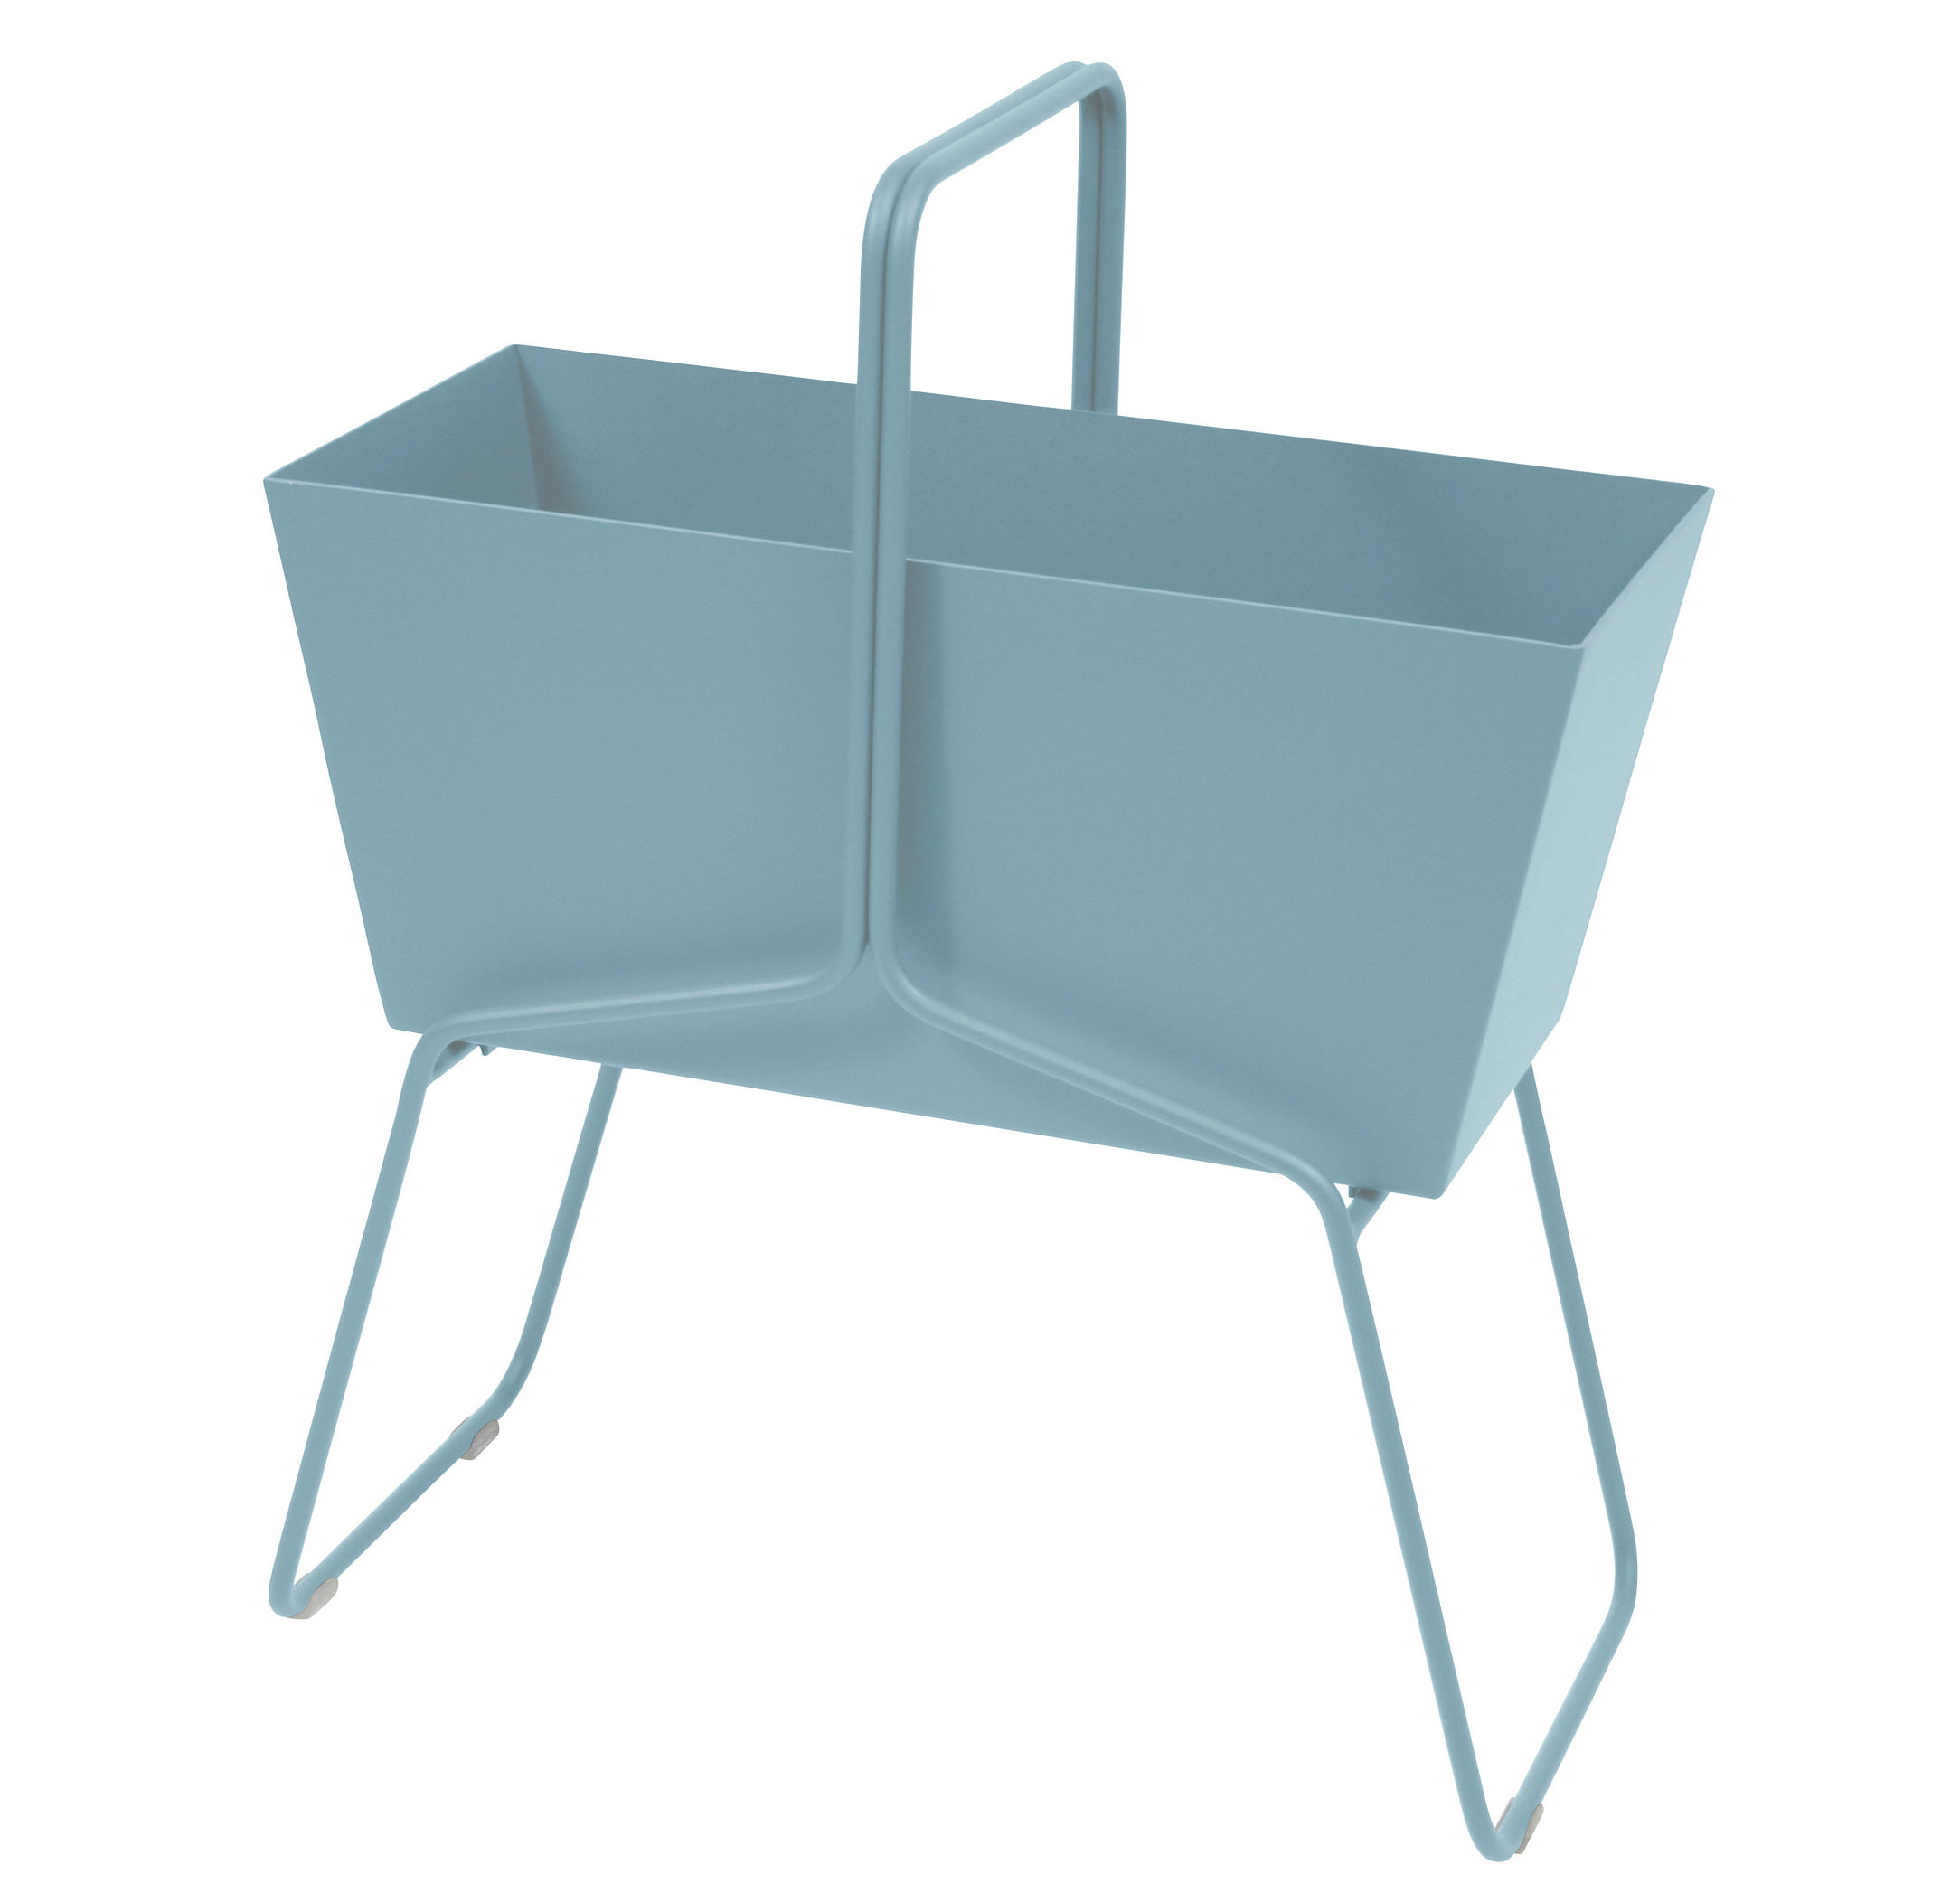 Outdoor - Pots & Plants - Basket Flowerpot - L 70 x H 84 cm by Fermob - Blue Fjord - Aluminium, Steel